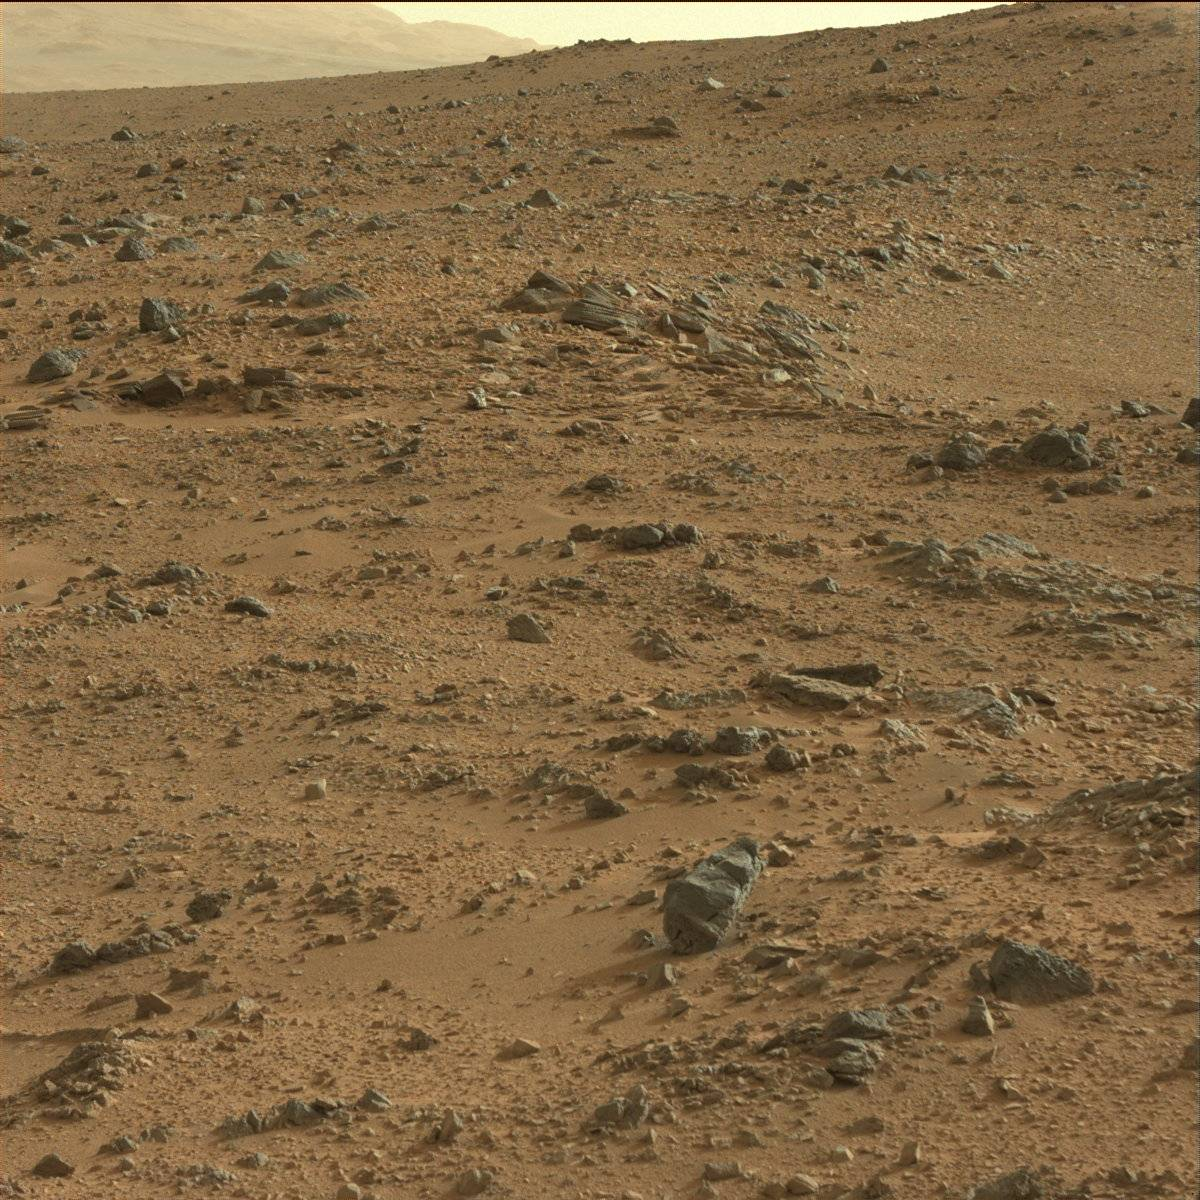 pictures from nasa mars - photo #9